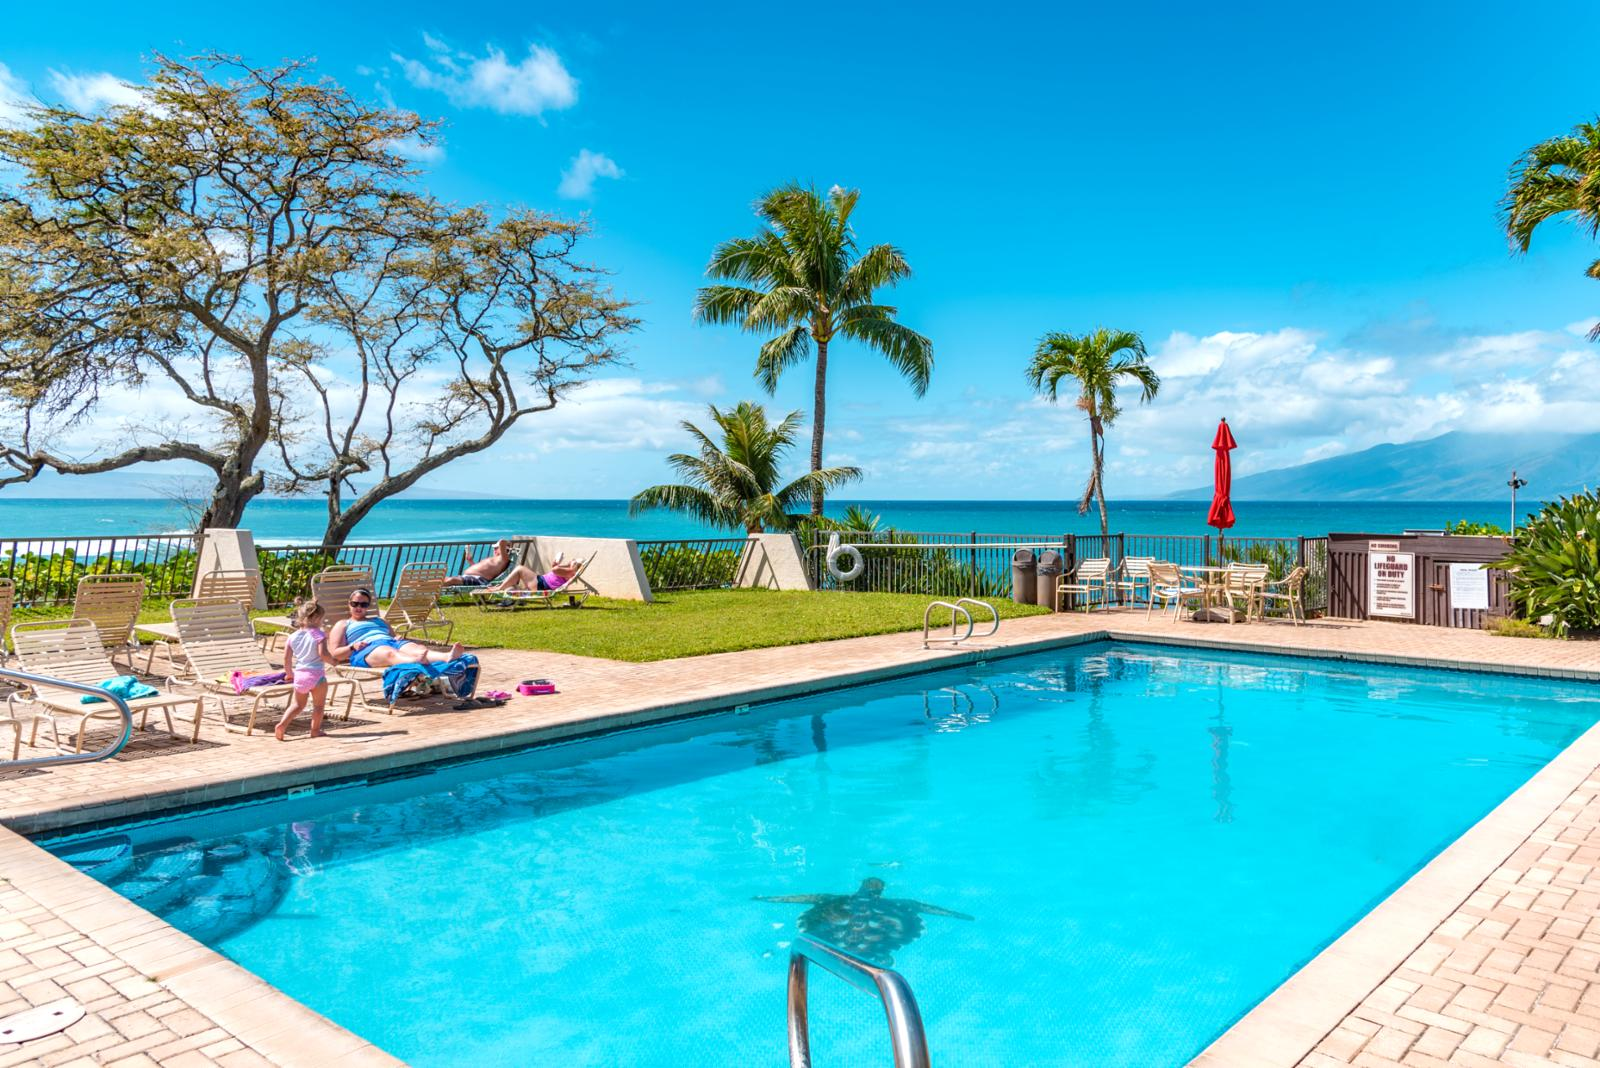 Napili Point Resort Grounds, direct oceanfront! 1 of 2 pool decks!